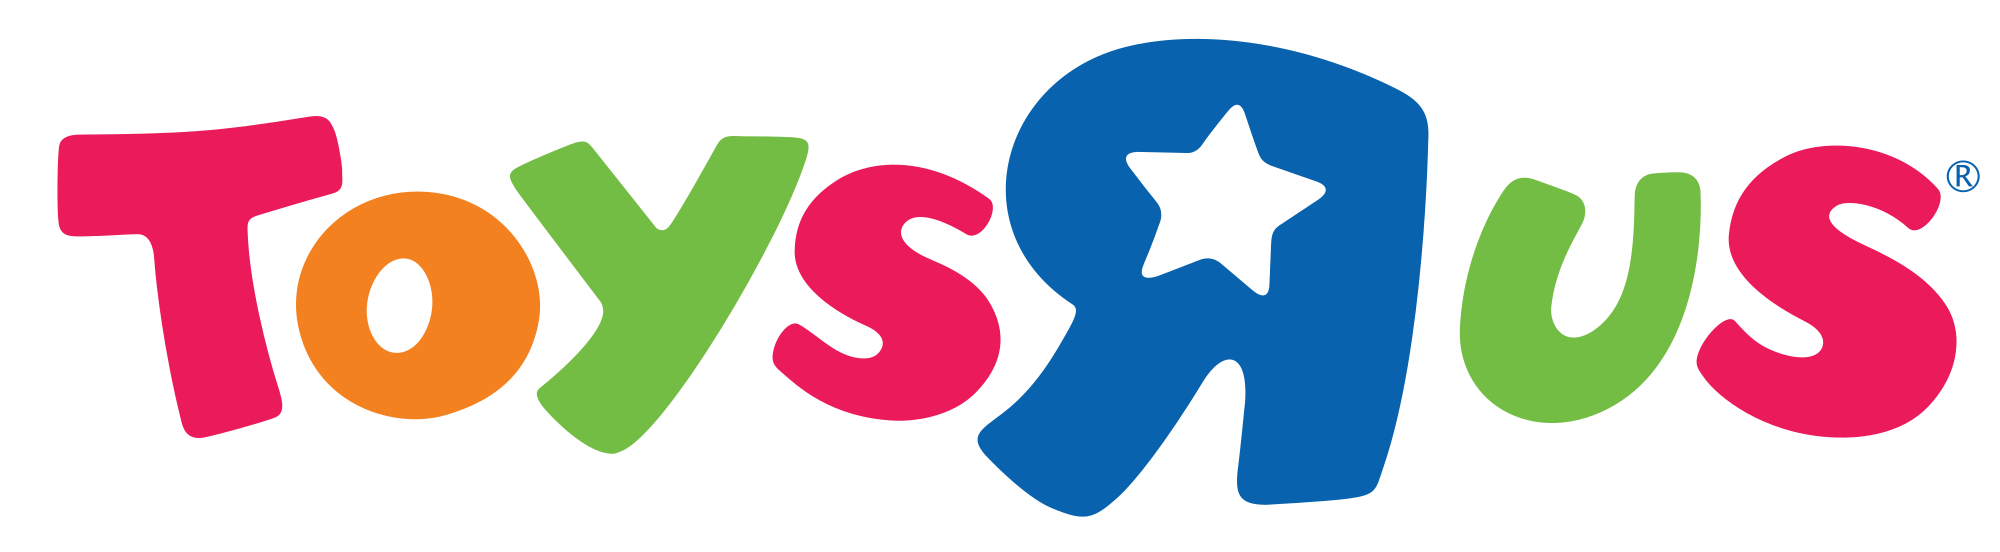 Toys r us png. File logo svg wikimedia